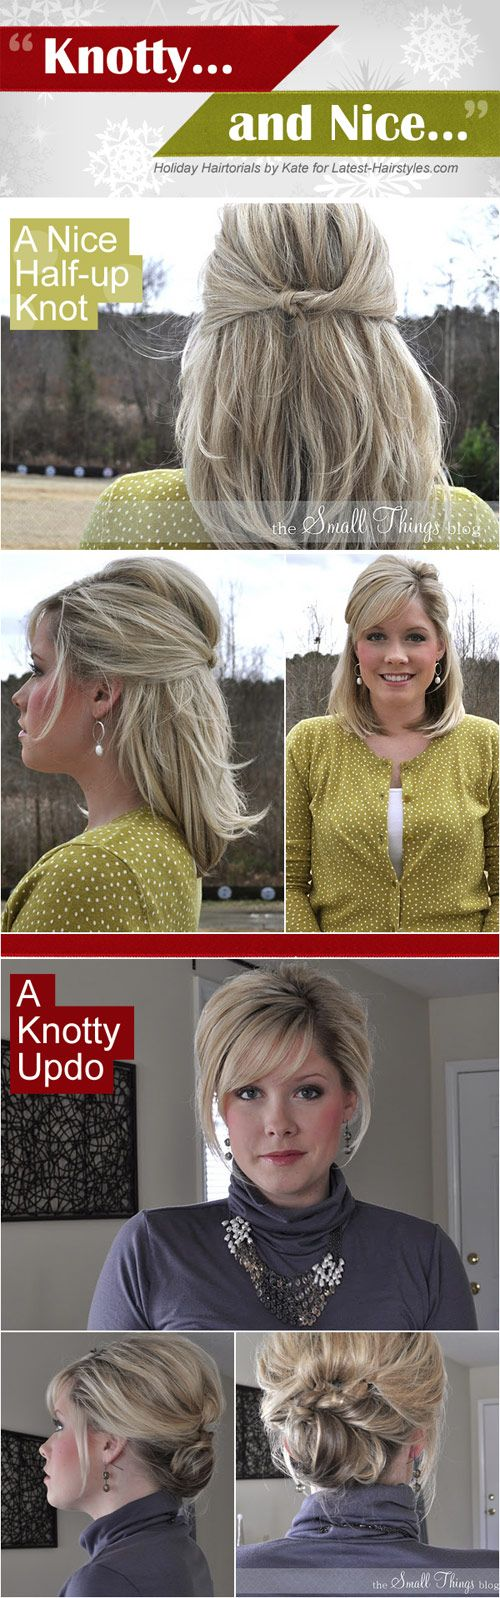 Knotty updo - easy!